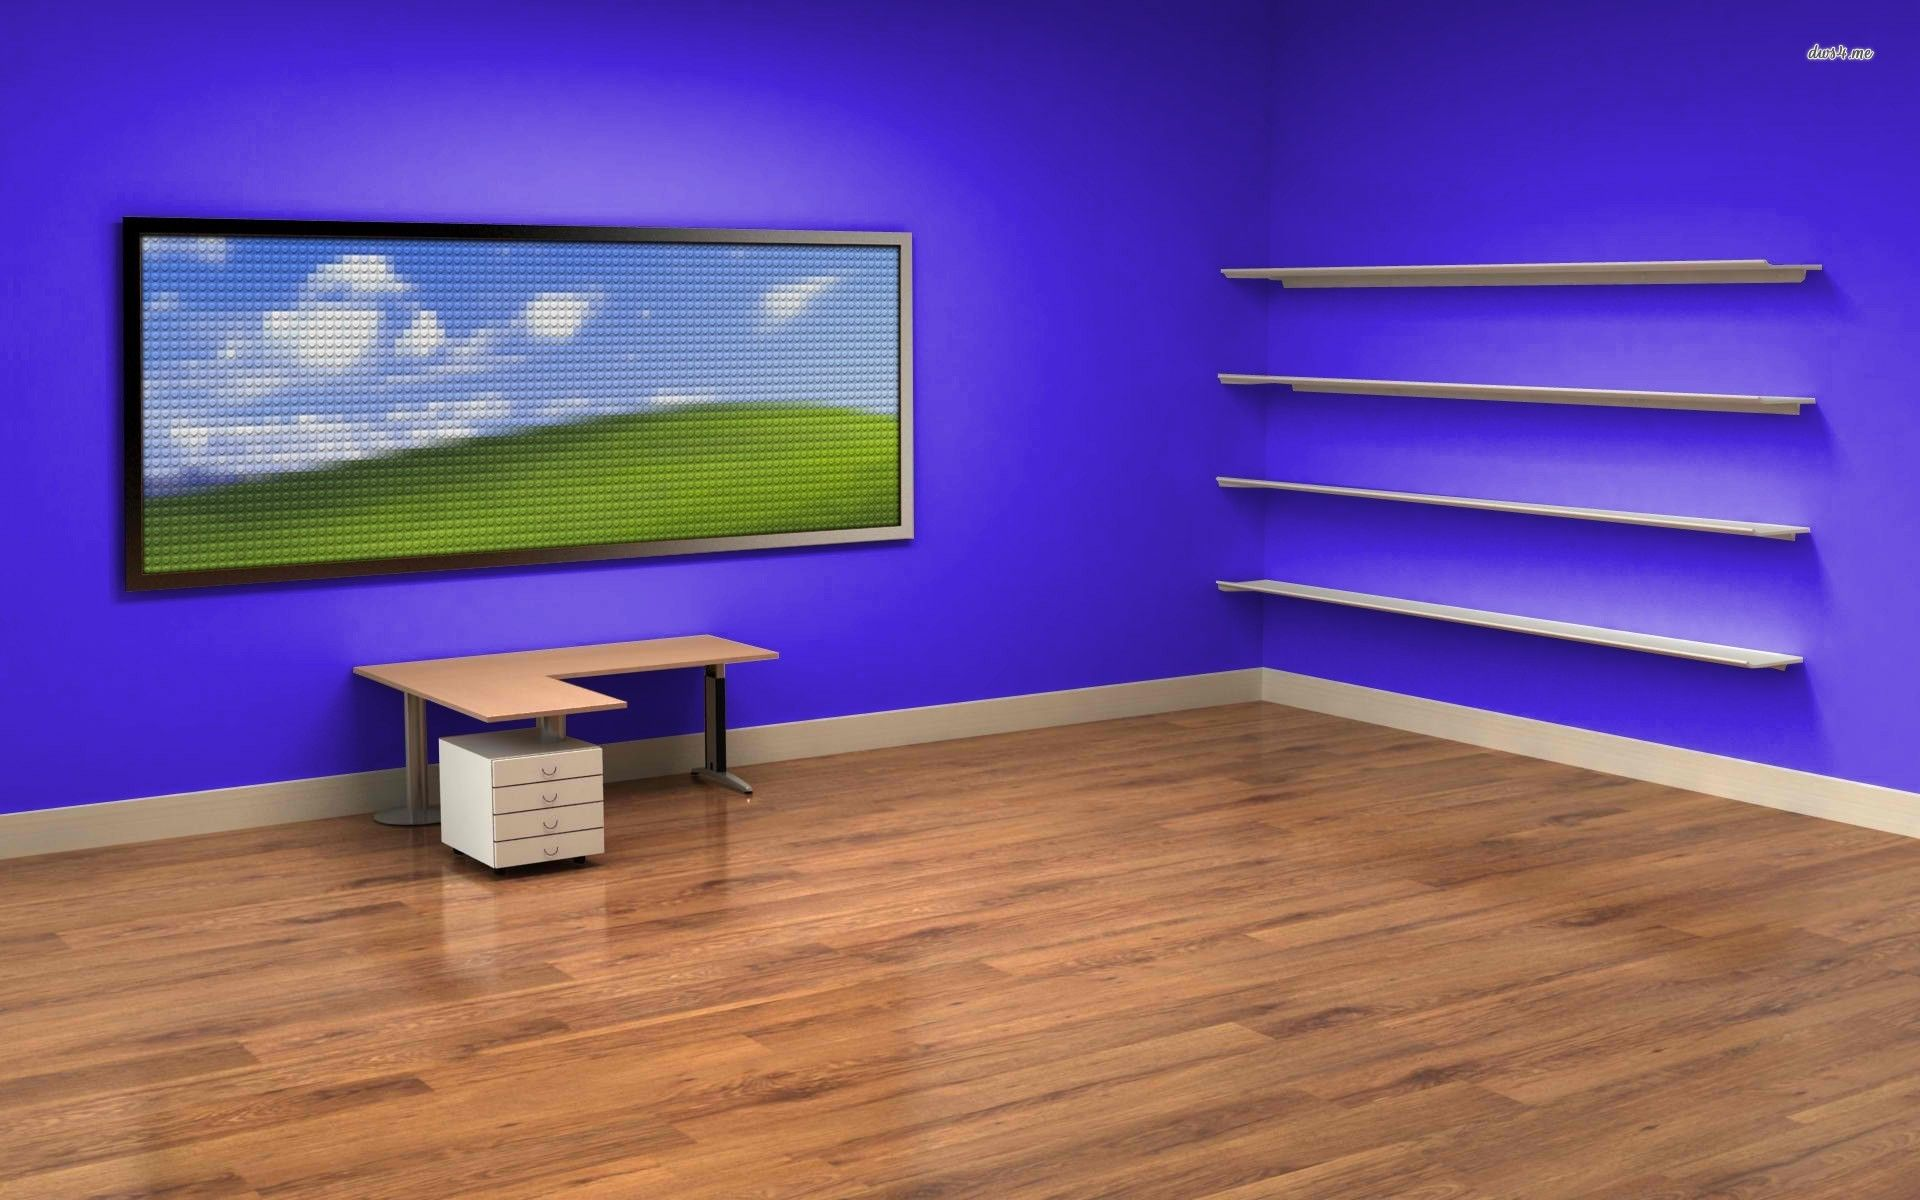 Desk and Shelves Desktop Wallpaper - WallpaperSafari ...